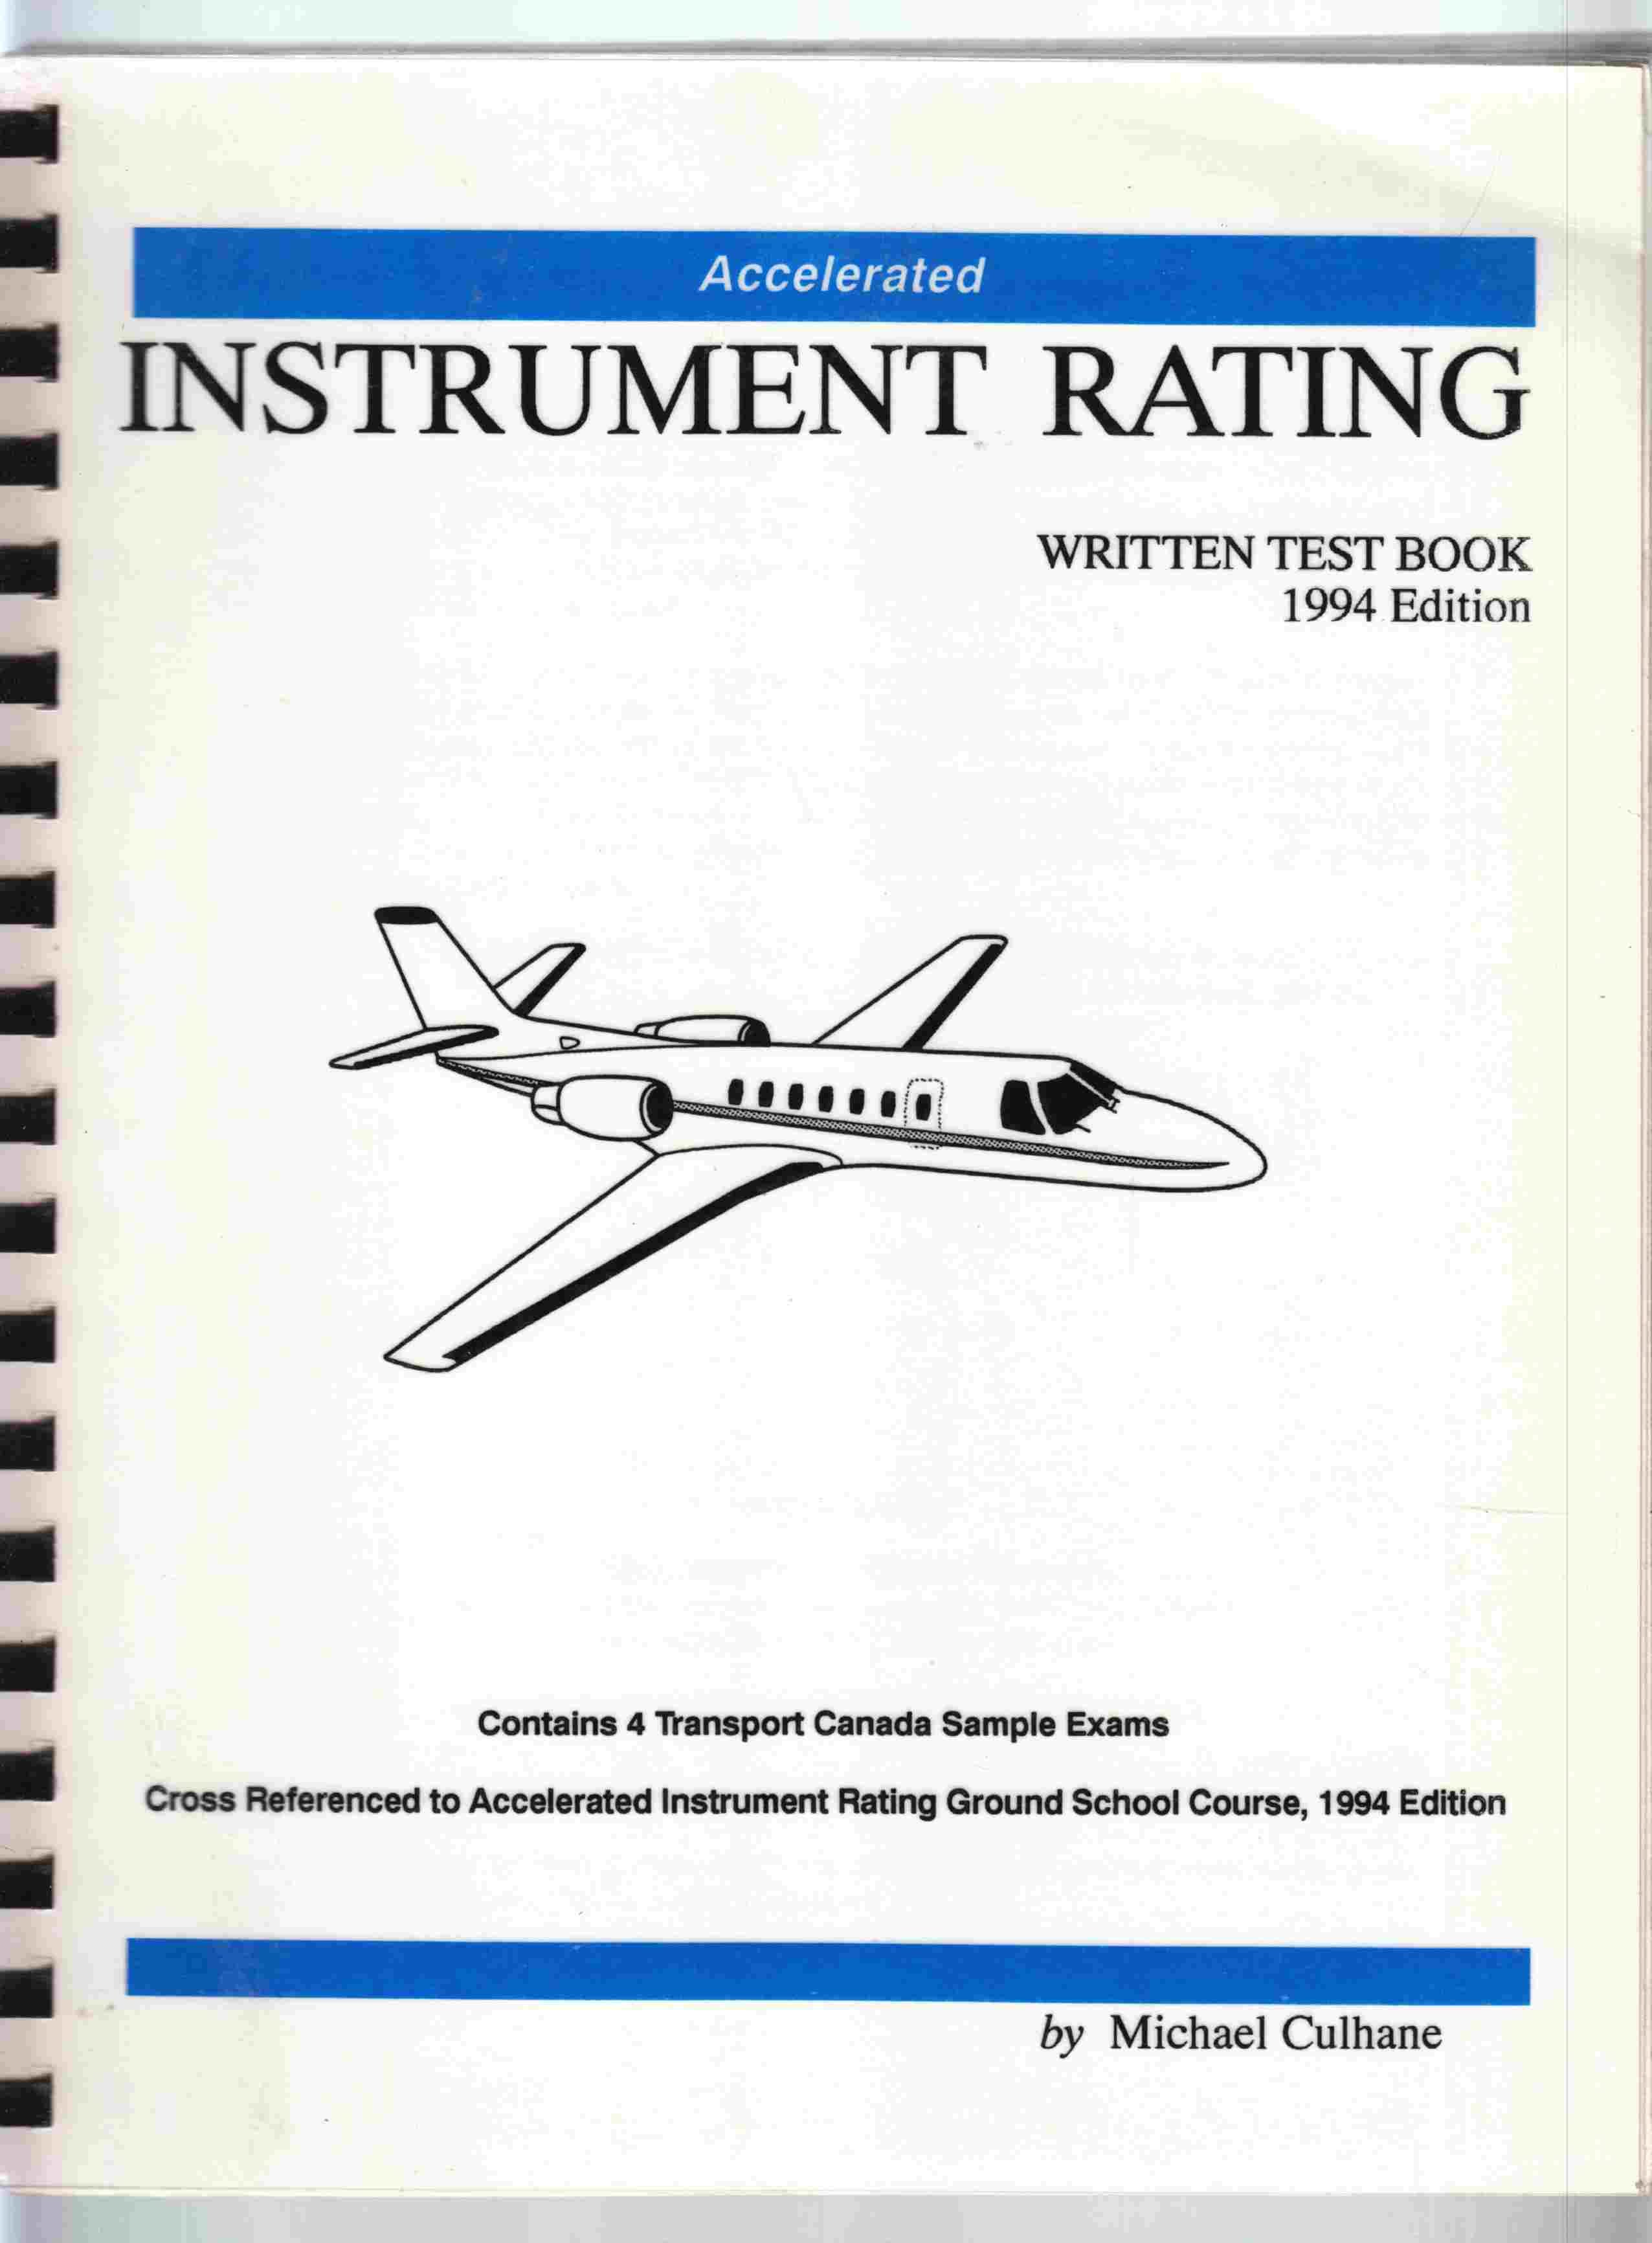 Image for Accelerated Instrument Rating Written Test Book, 1994 Edition